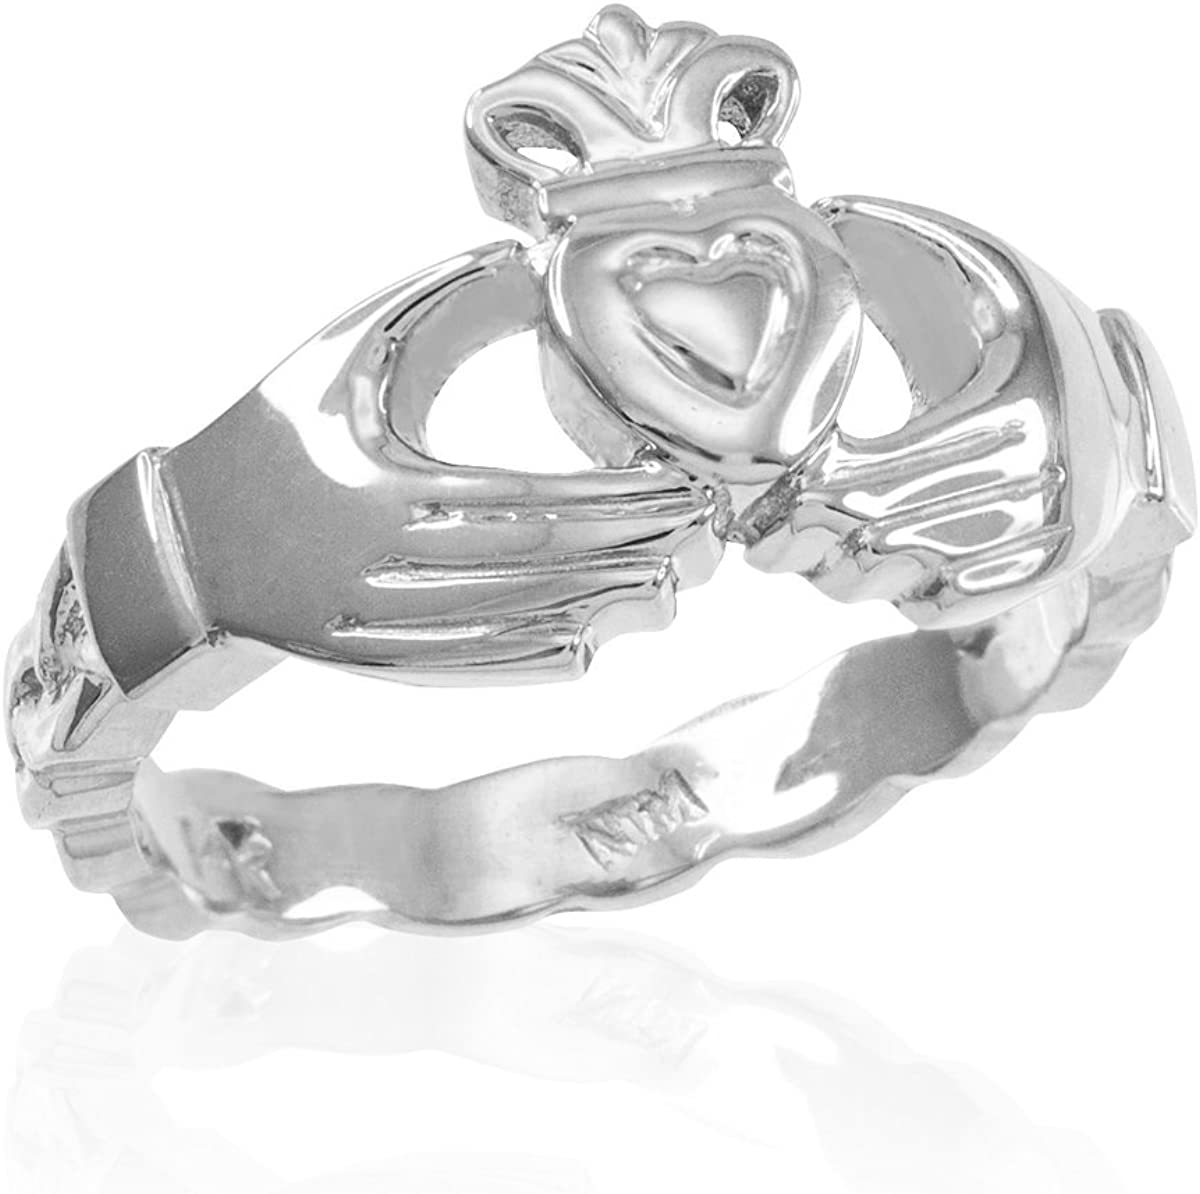 Solid Popular brand 925 Sterling Silver Celtic Wedding Claddagh Engagemen Band Albuquerque Mall